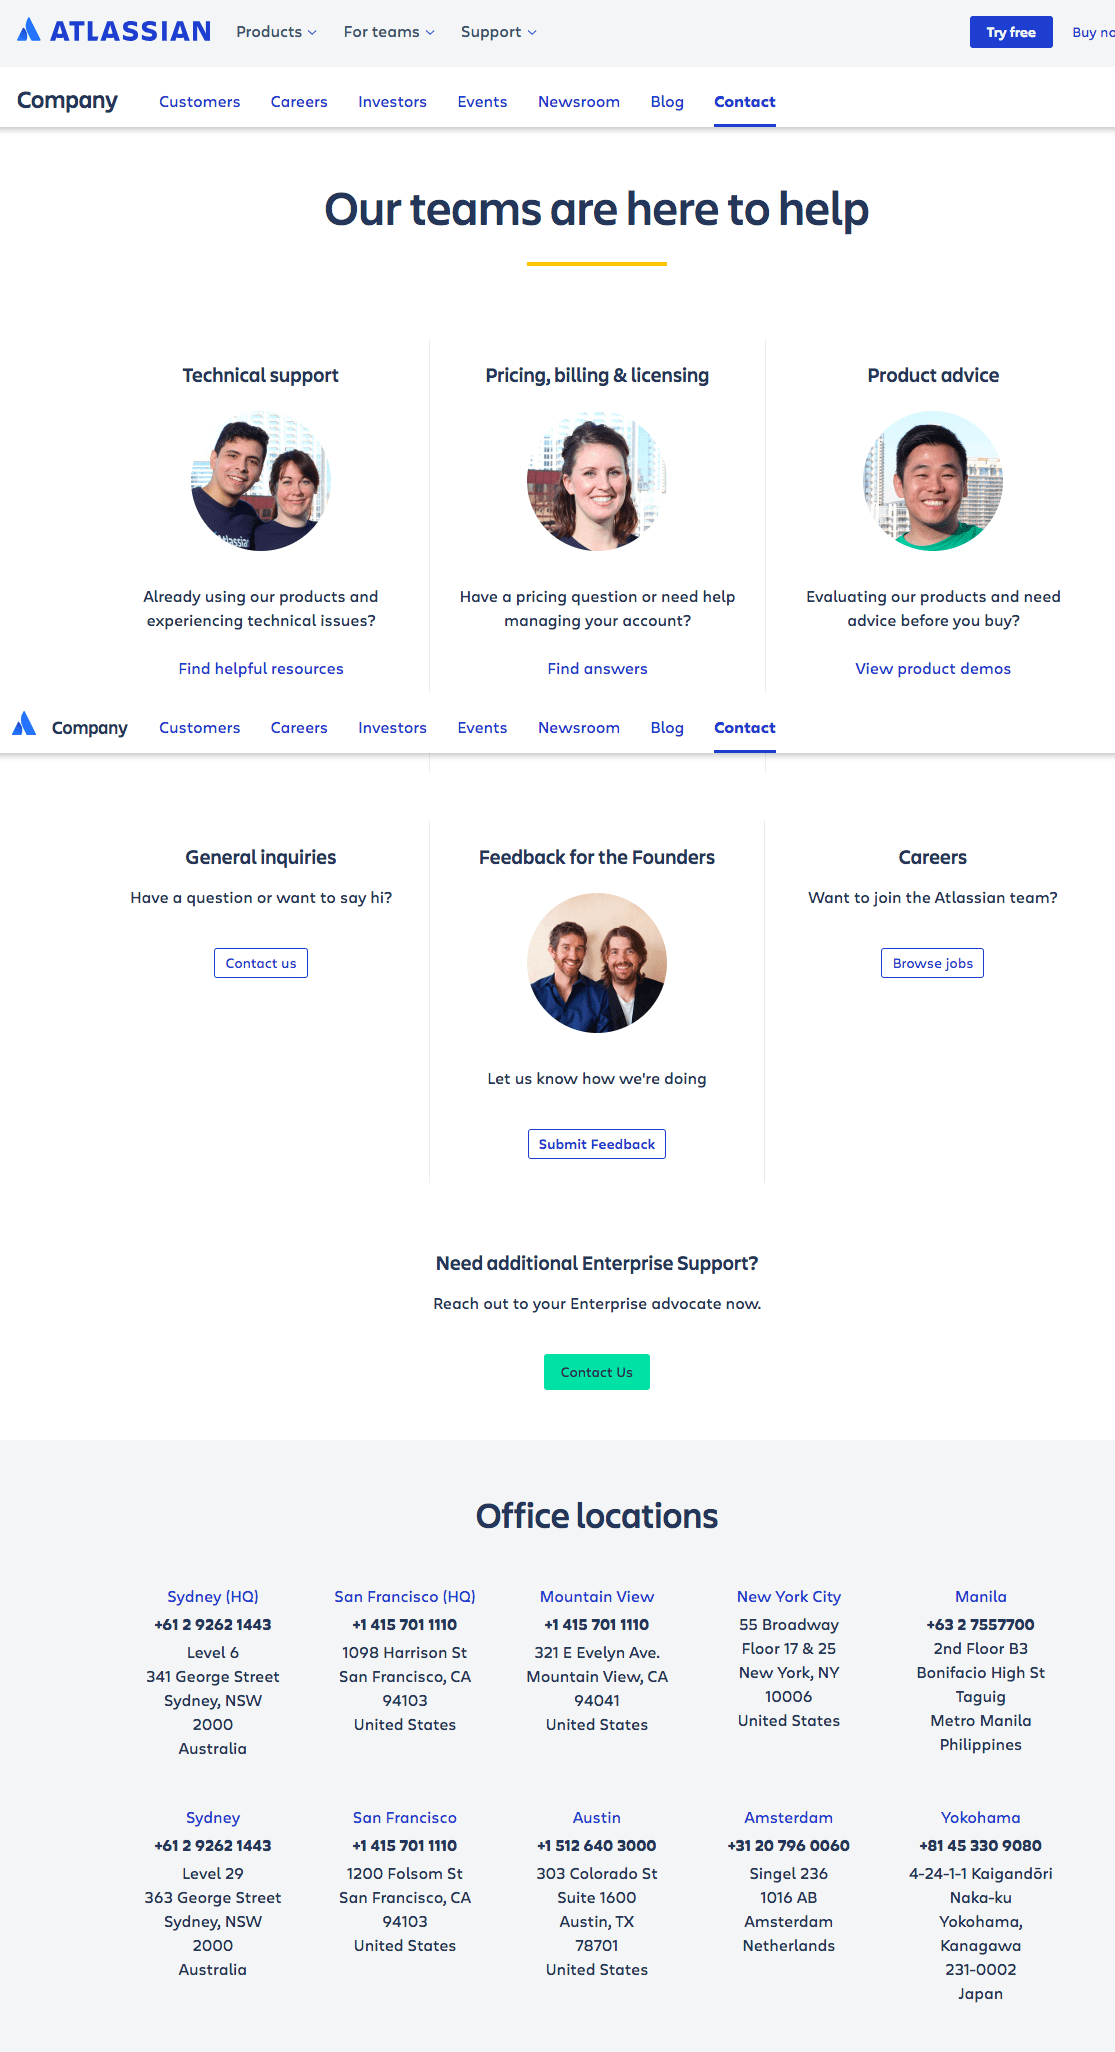 atlassian contact us-page